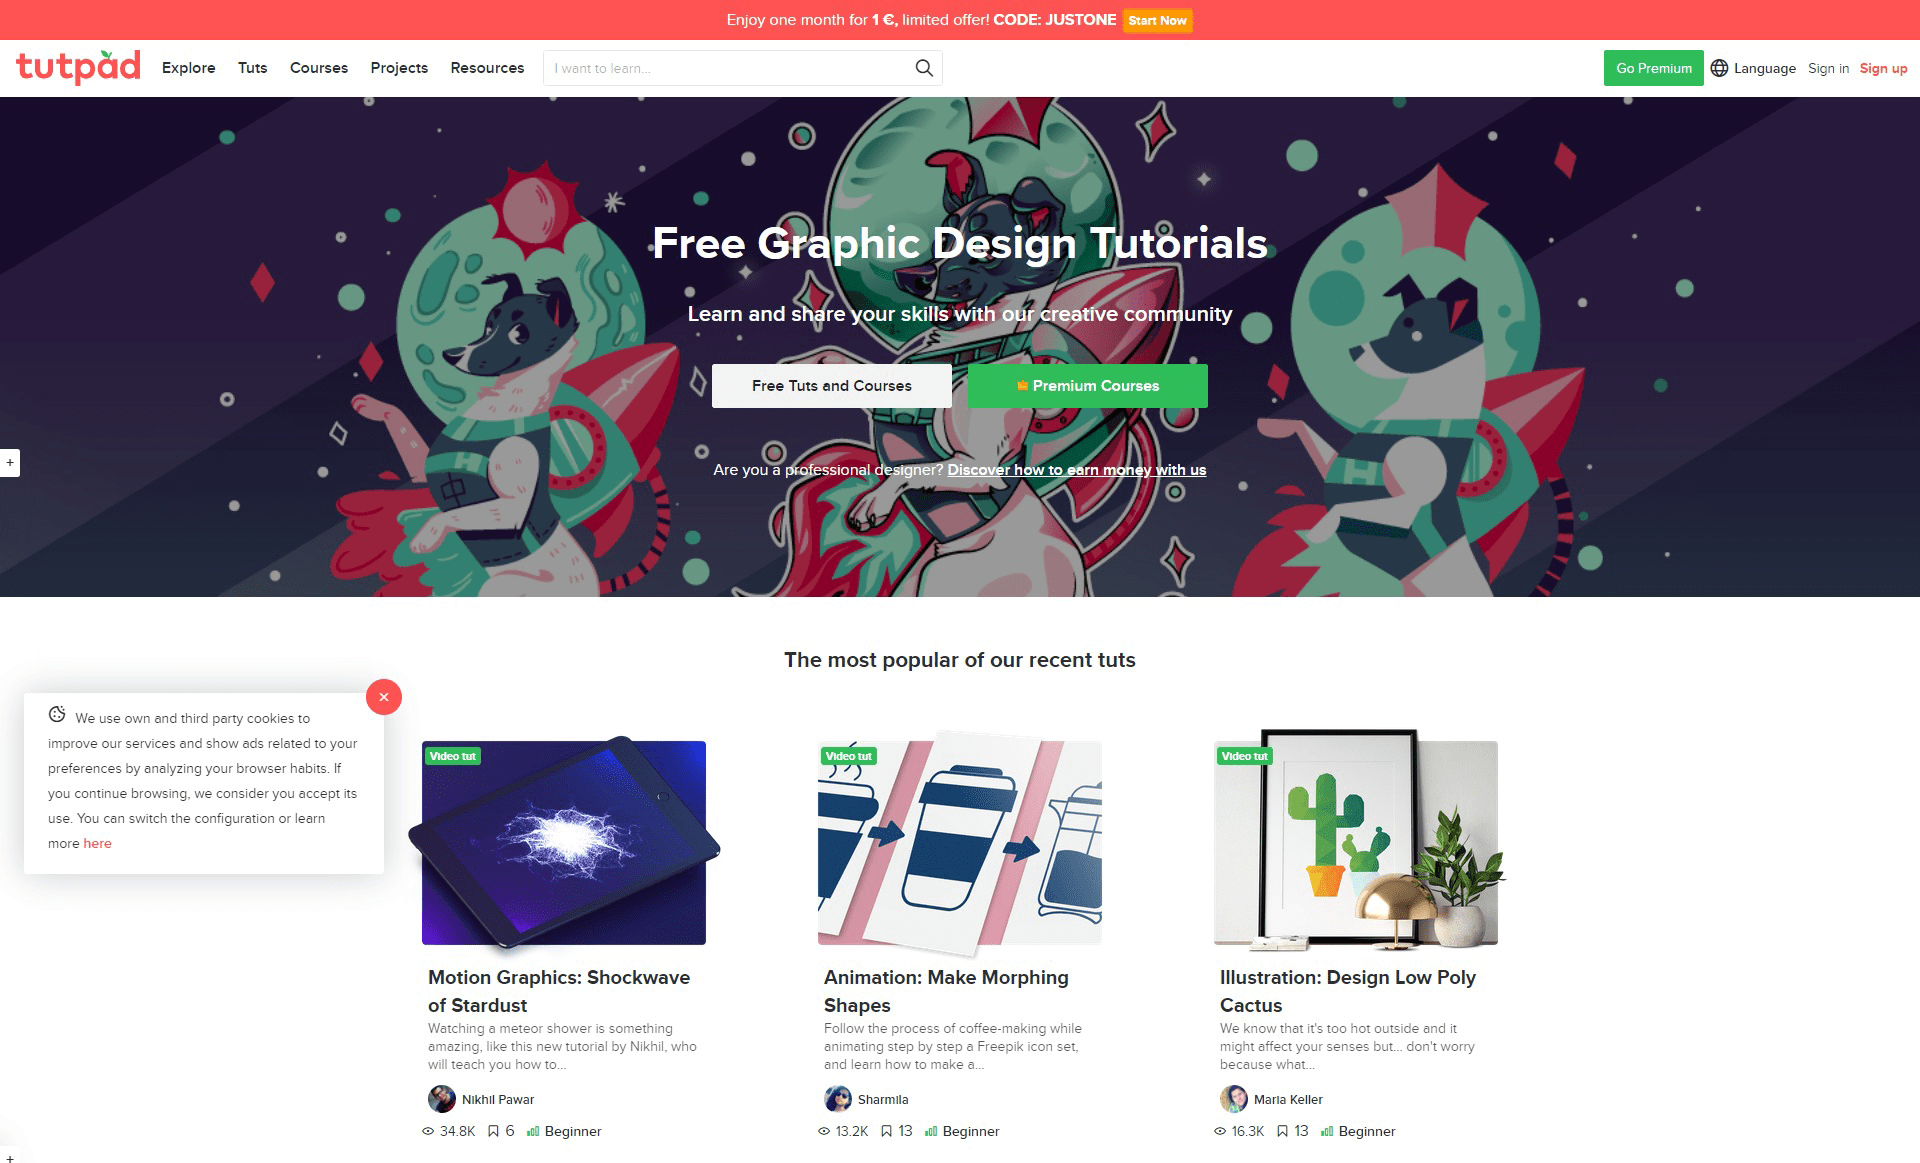 free graphics design tutorials